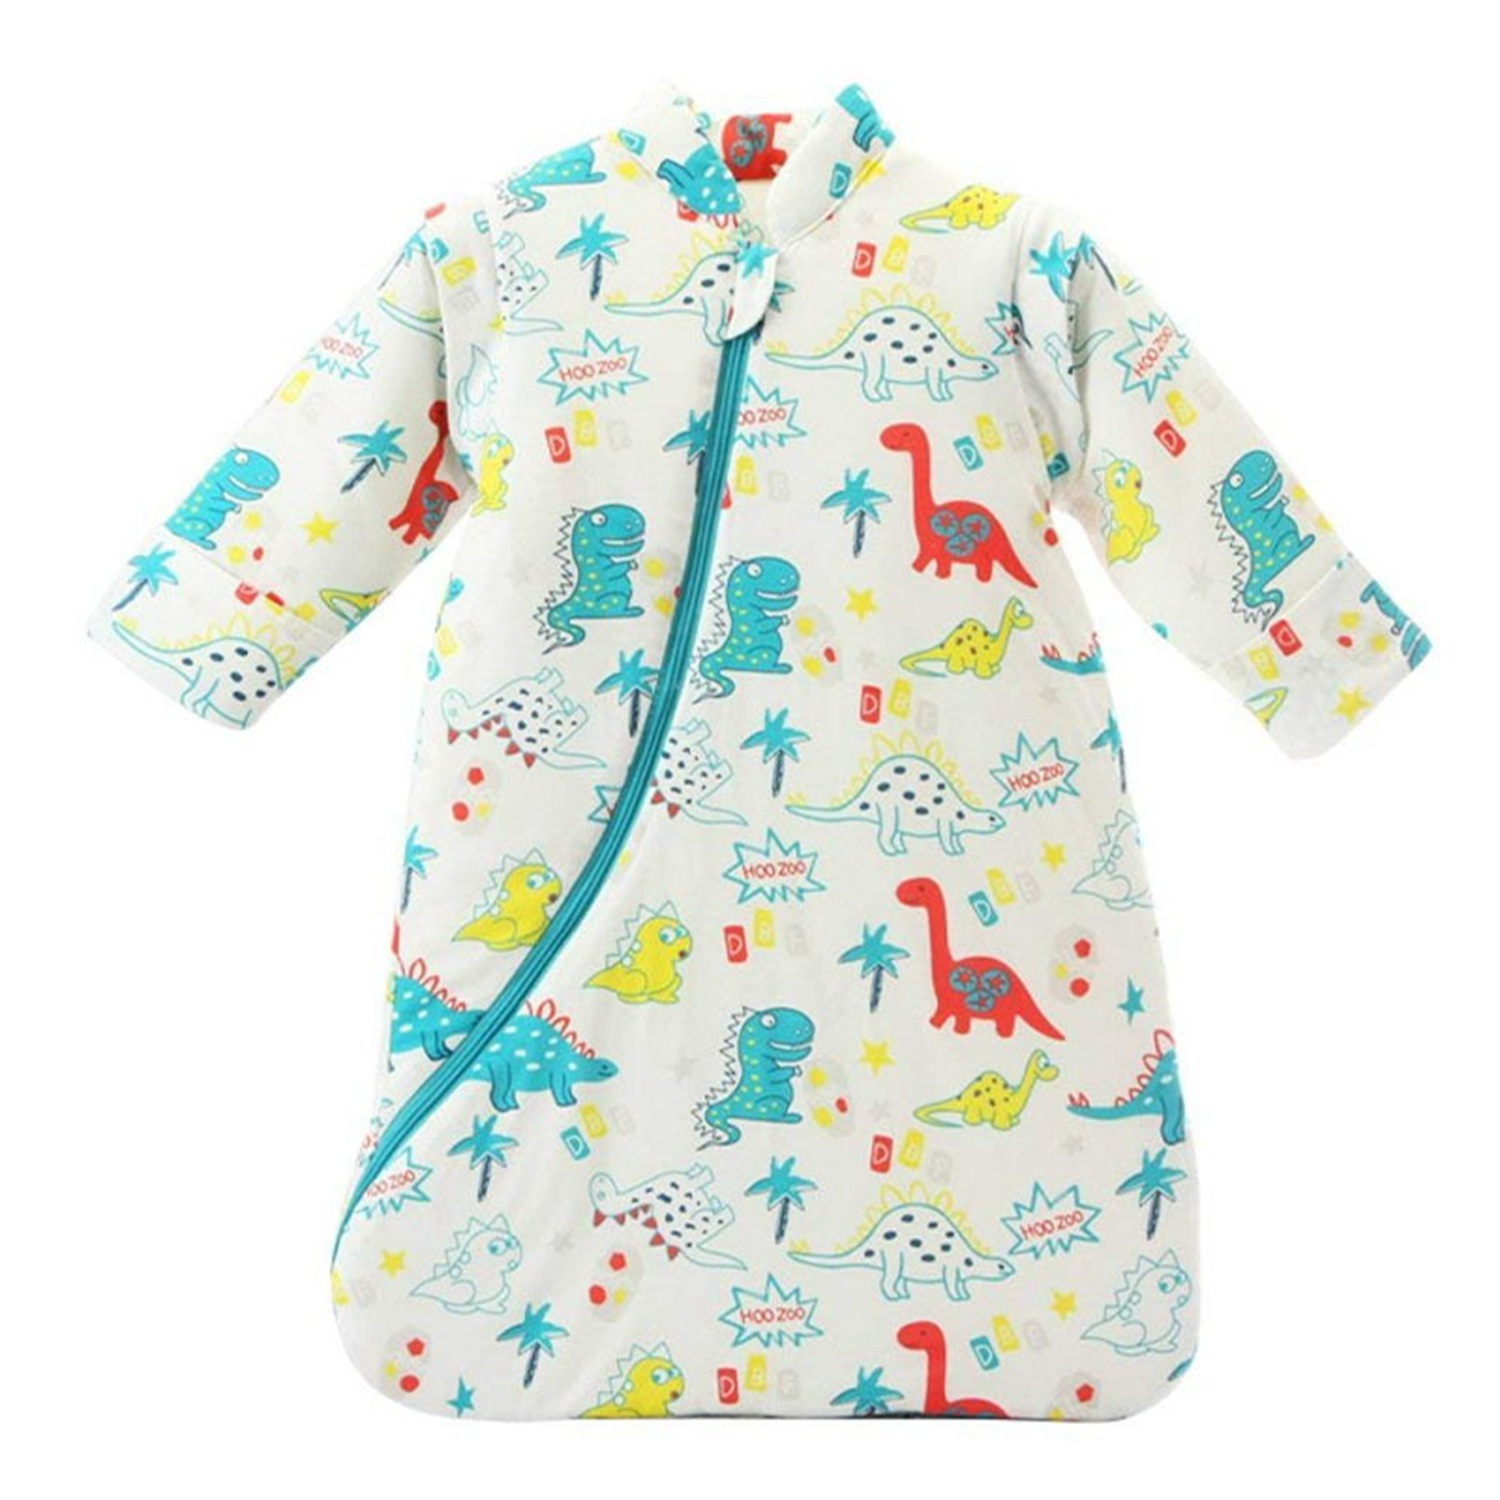 Unisex Baby Sleepsack Wearable Blanket Cotton Sleeping Bag Long Sleeve Nest Nightgowns Thickened Winter Dinosaur/3.5 Tog M